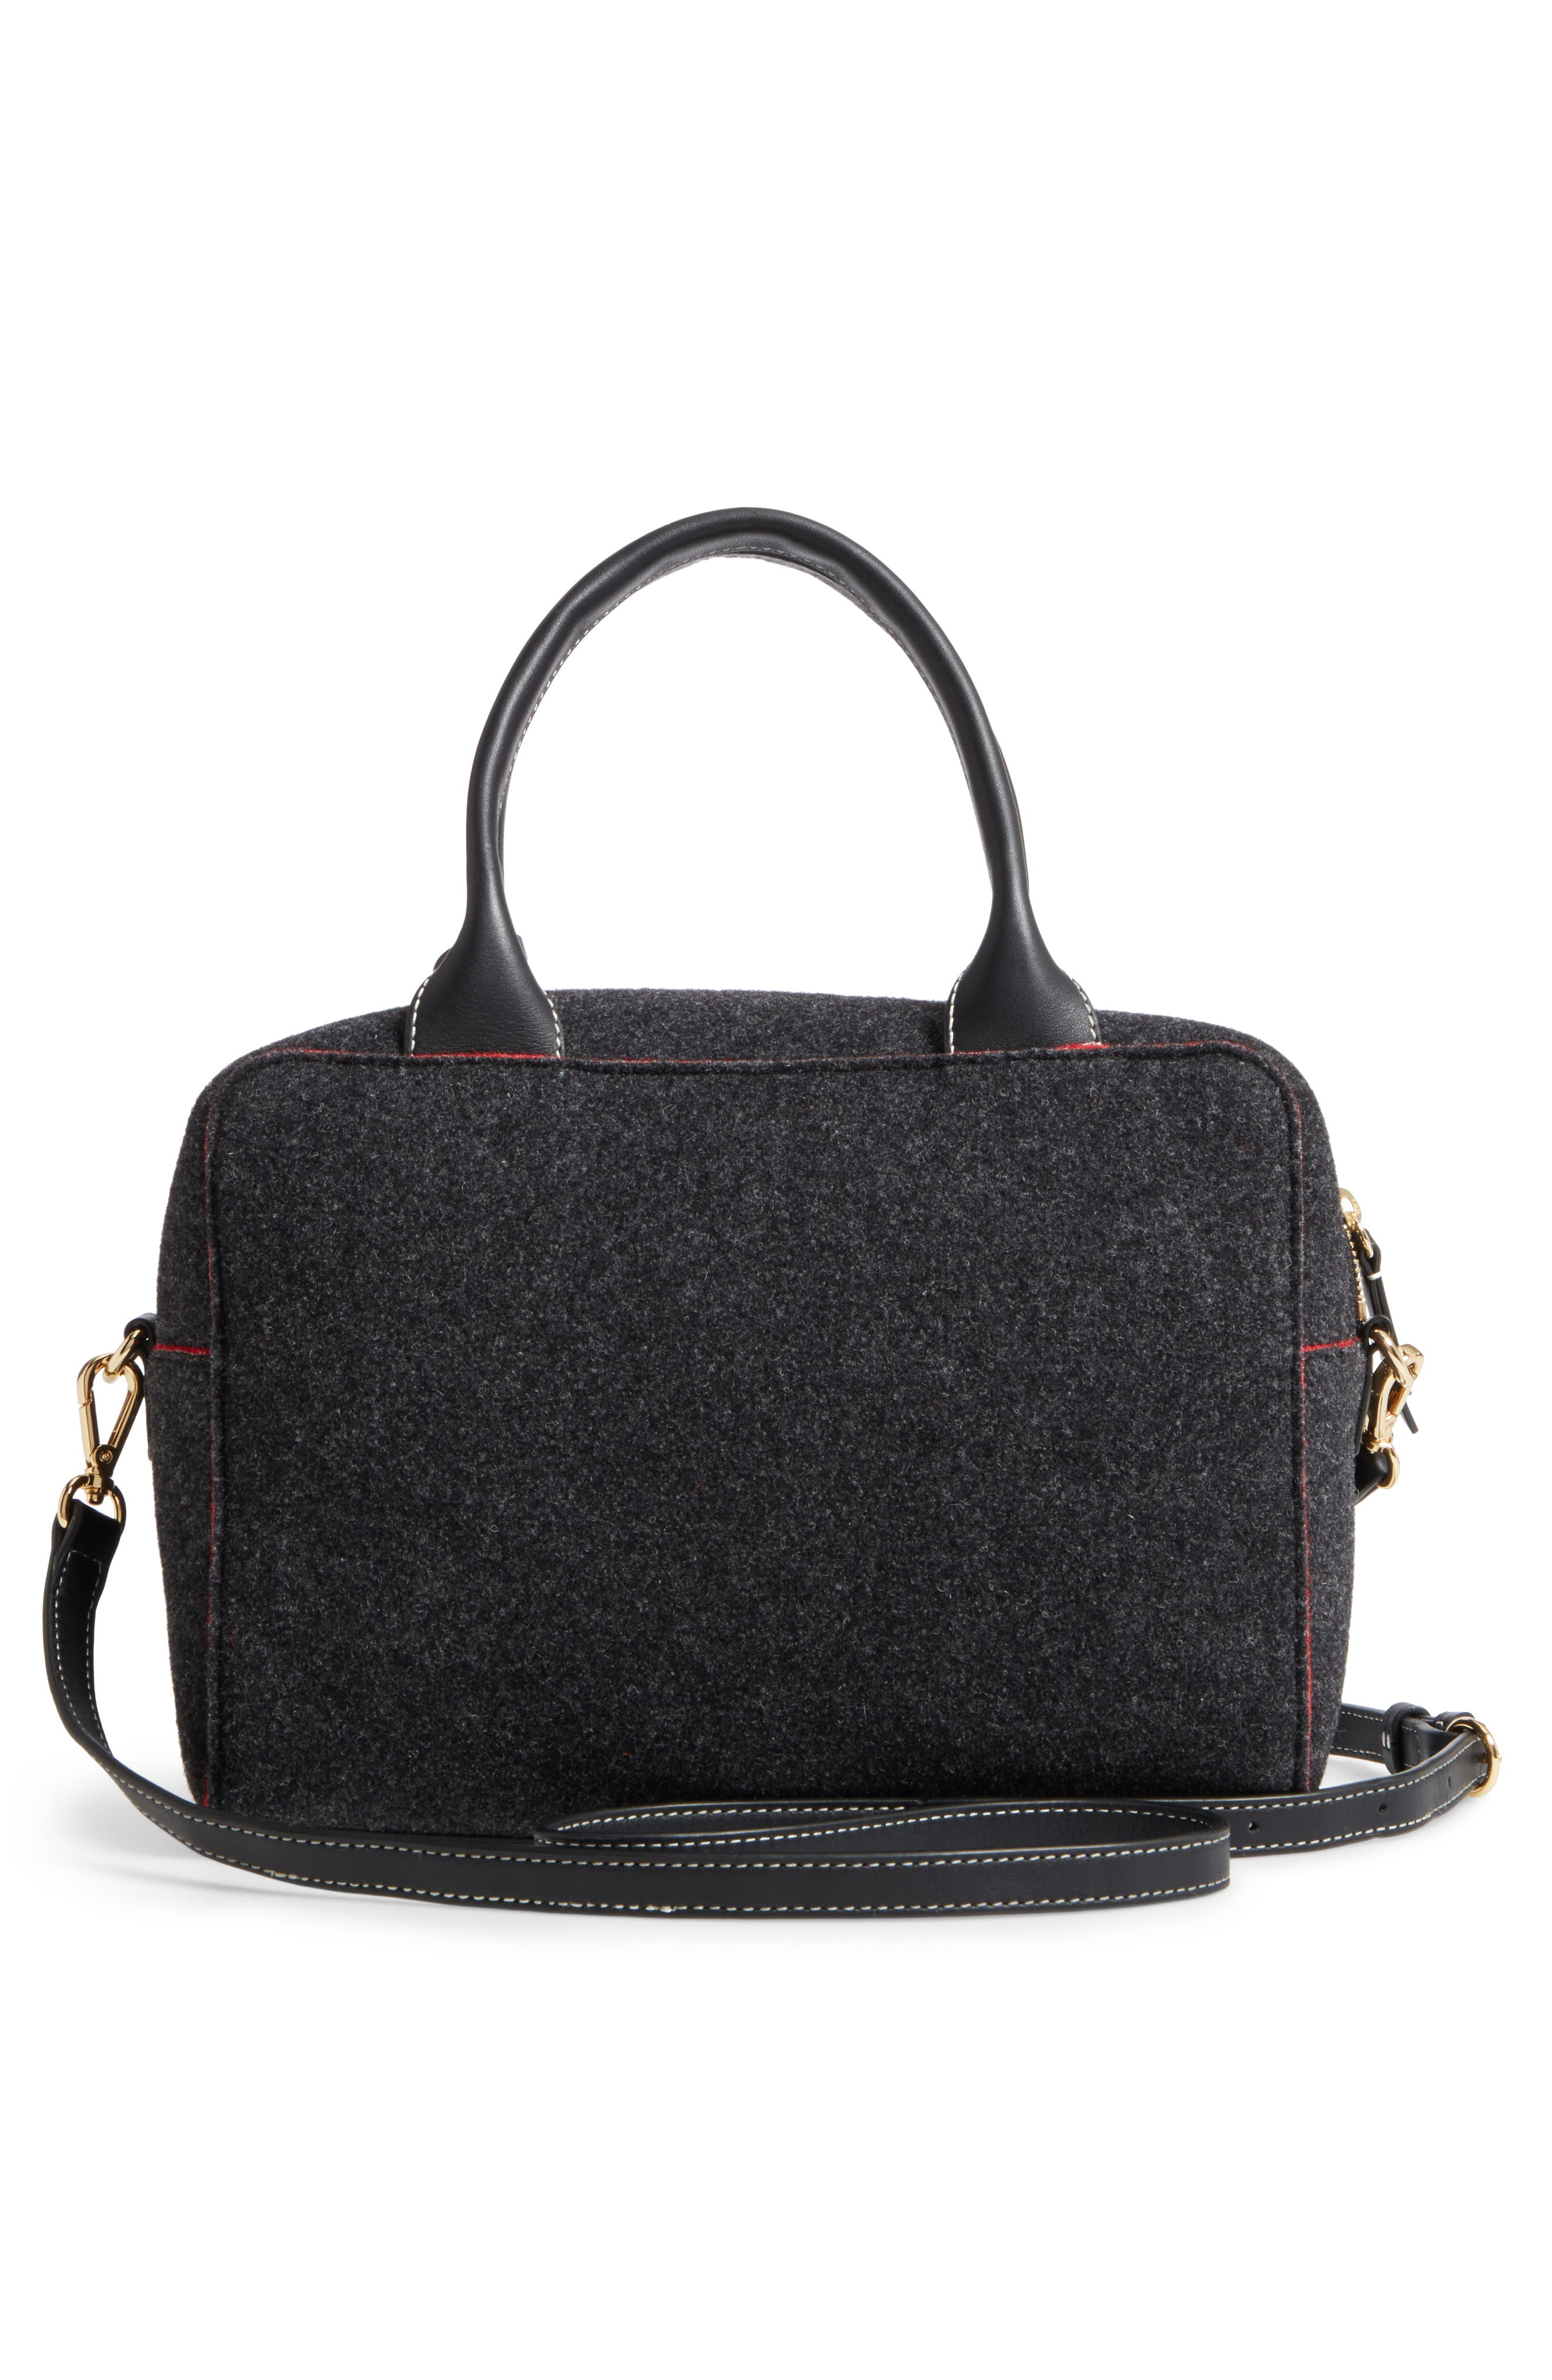 Medium Wool & Leather Satchel,                             Alternate thumbnail 2, color,                             Charcoal